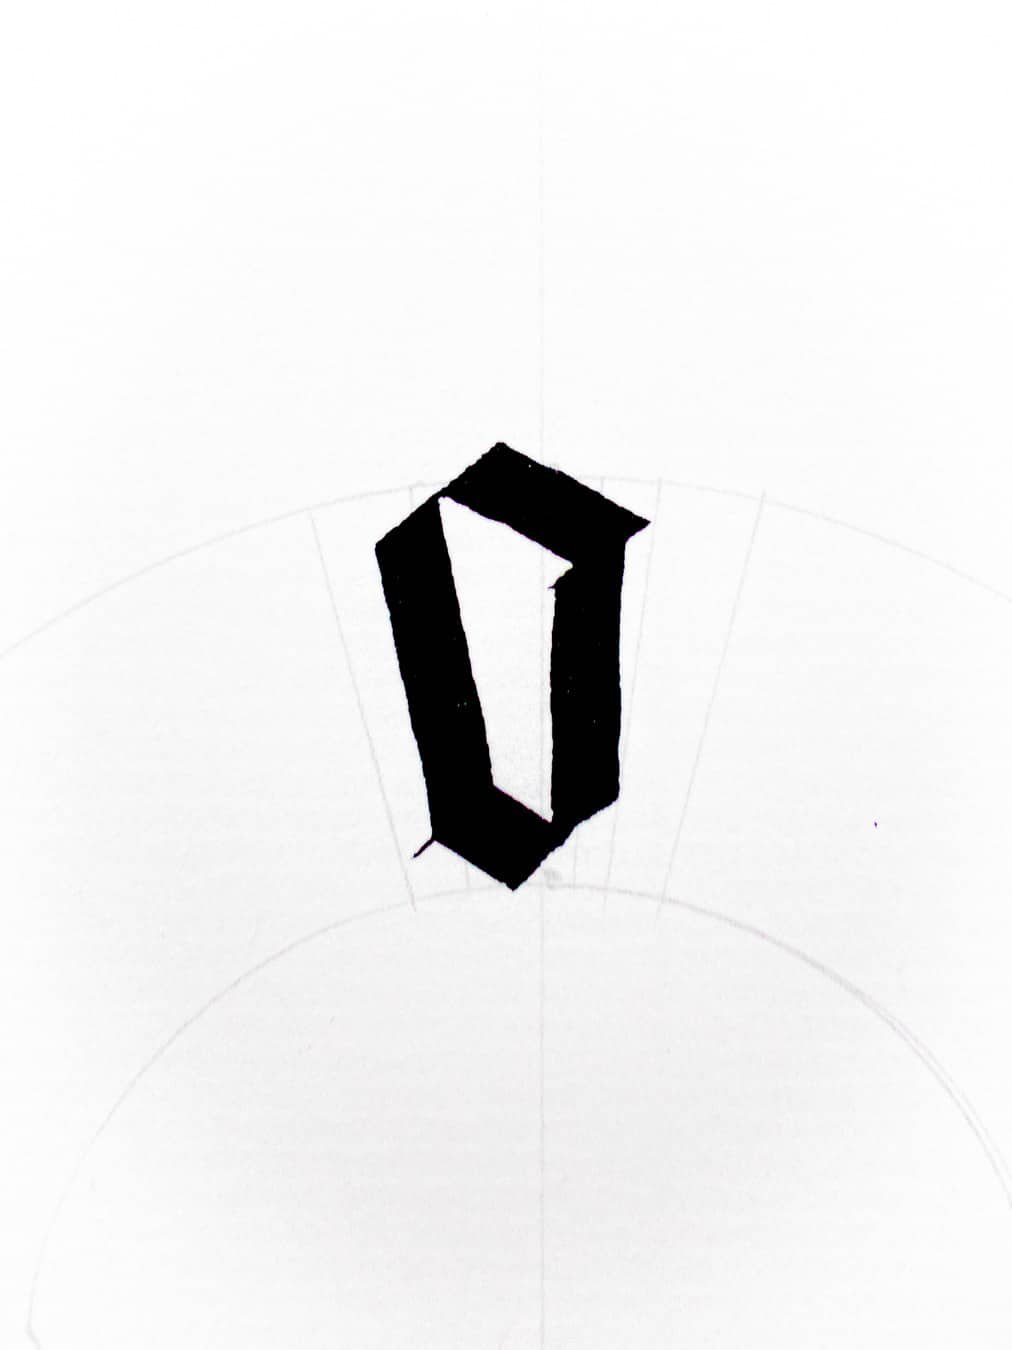 tweaked letter o to make fit the circular baseline